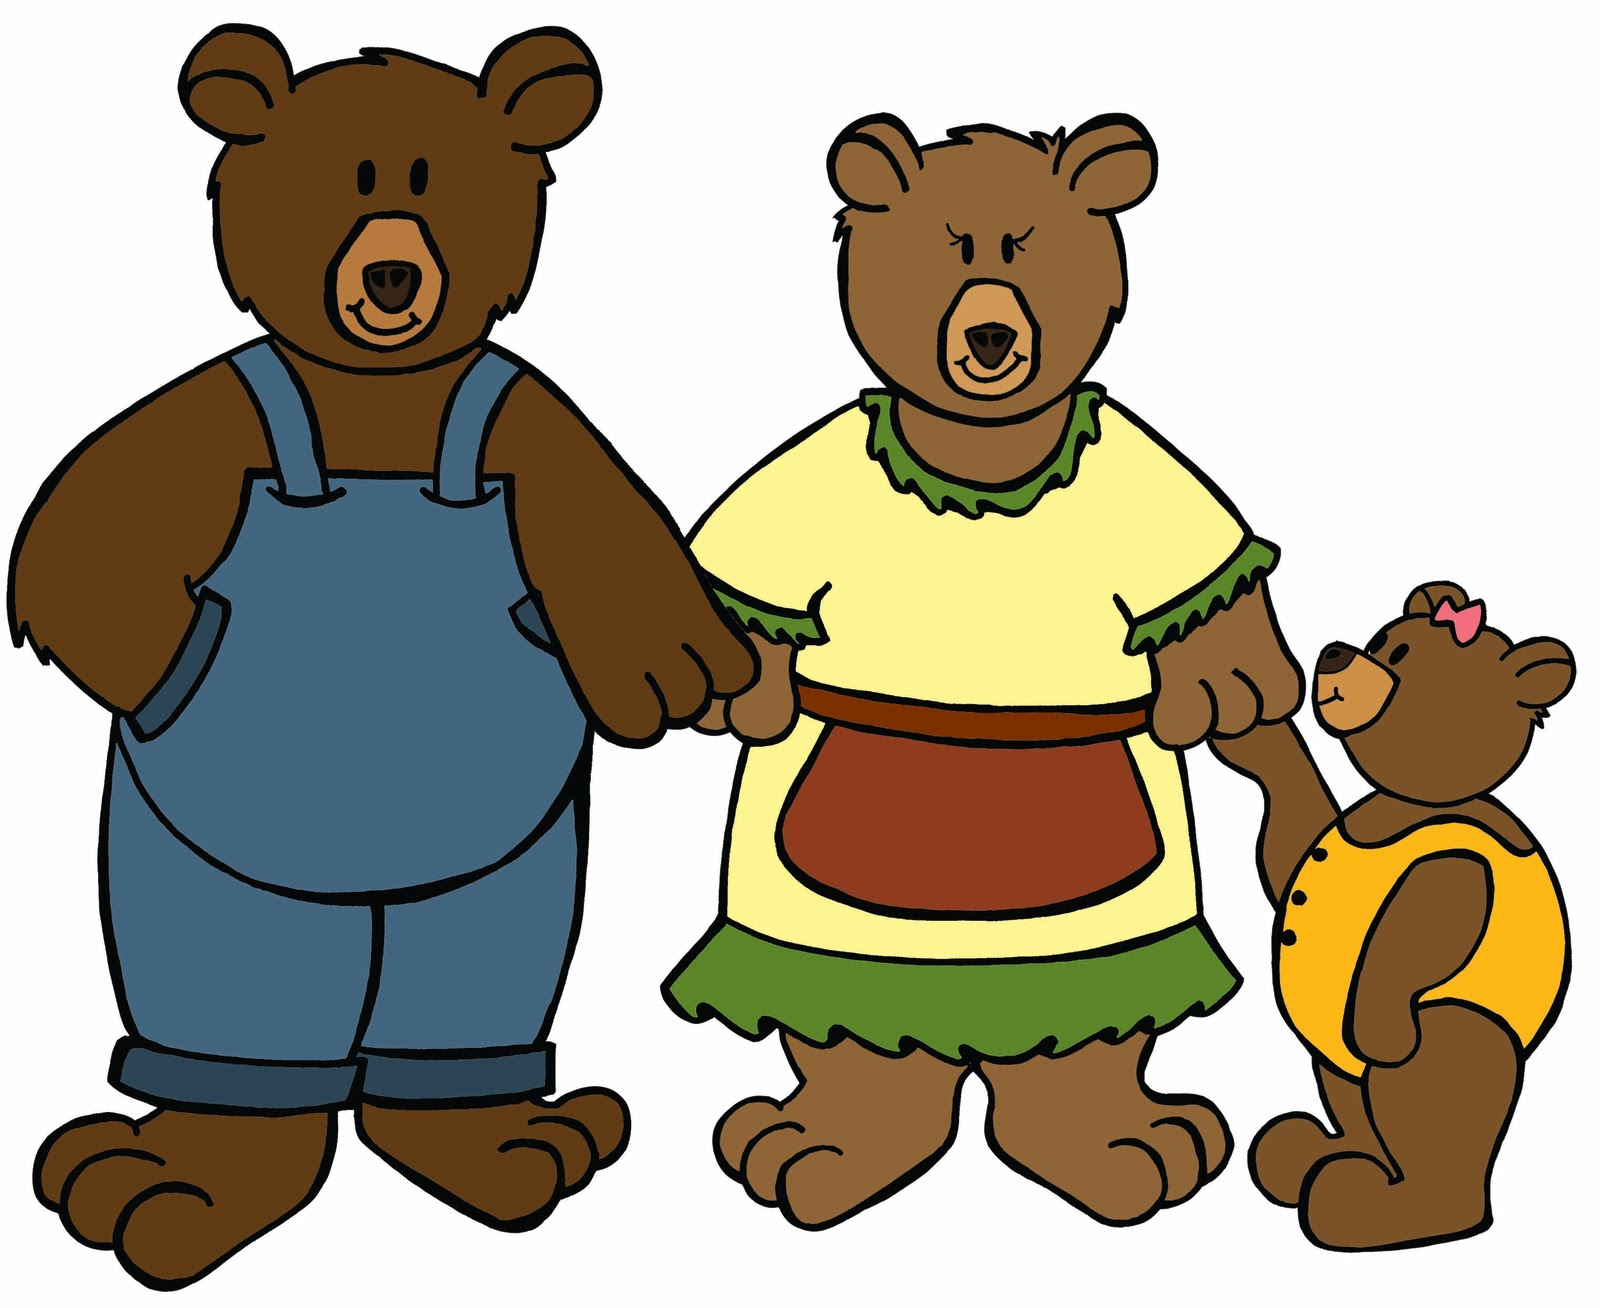 3 bears walking clipart graphic freeuse stock Goldilocks And The Three Bears Clipart | Free download best ... graphic freeuse stock